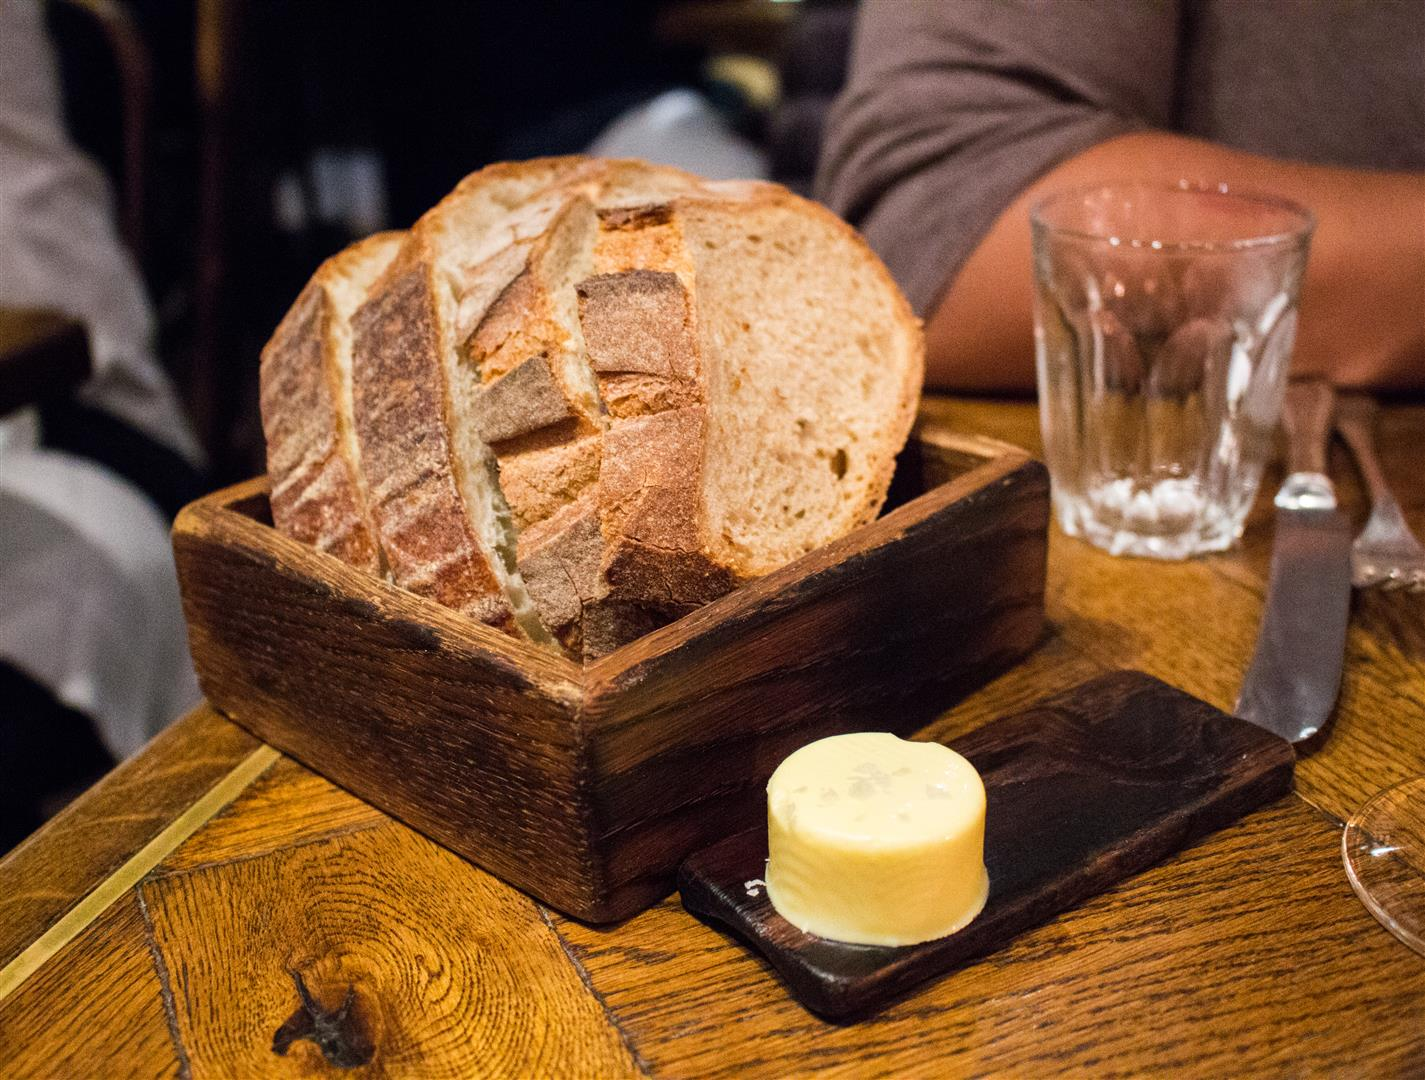 It's not just bread and butter, it's so much more...